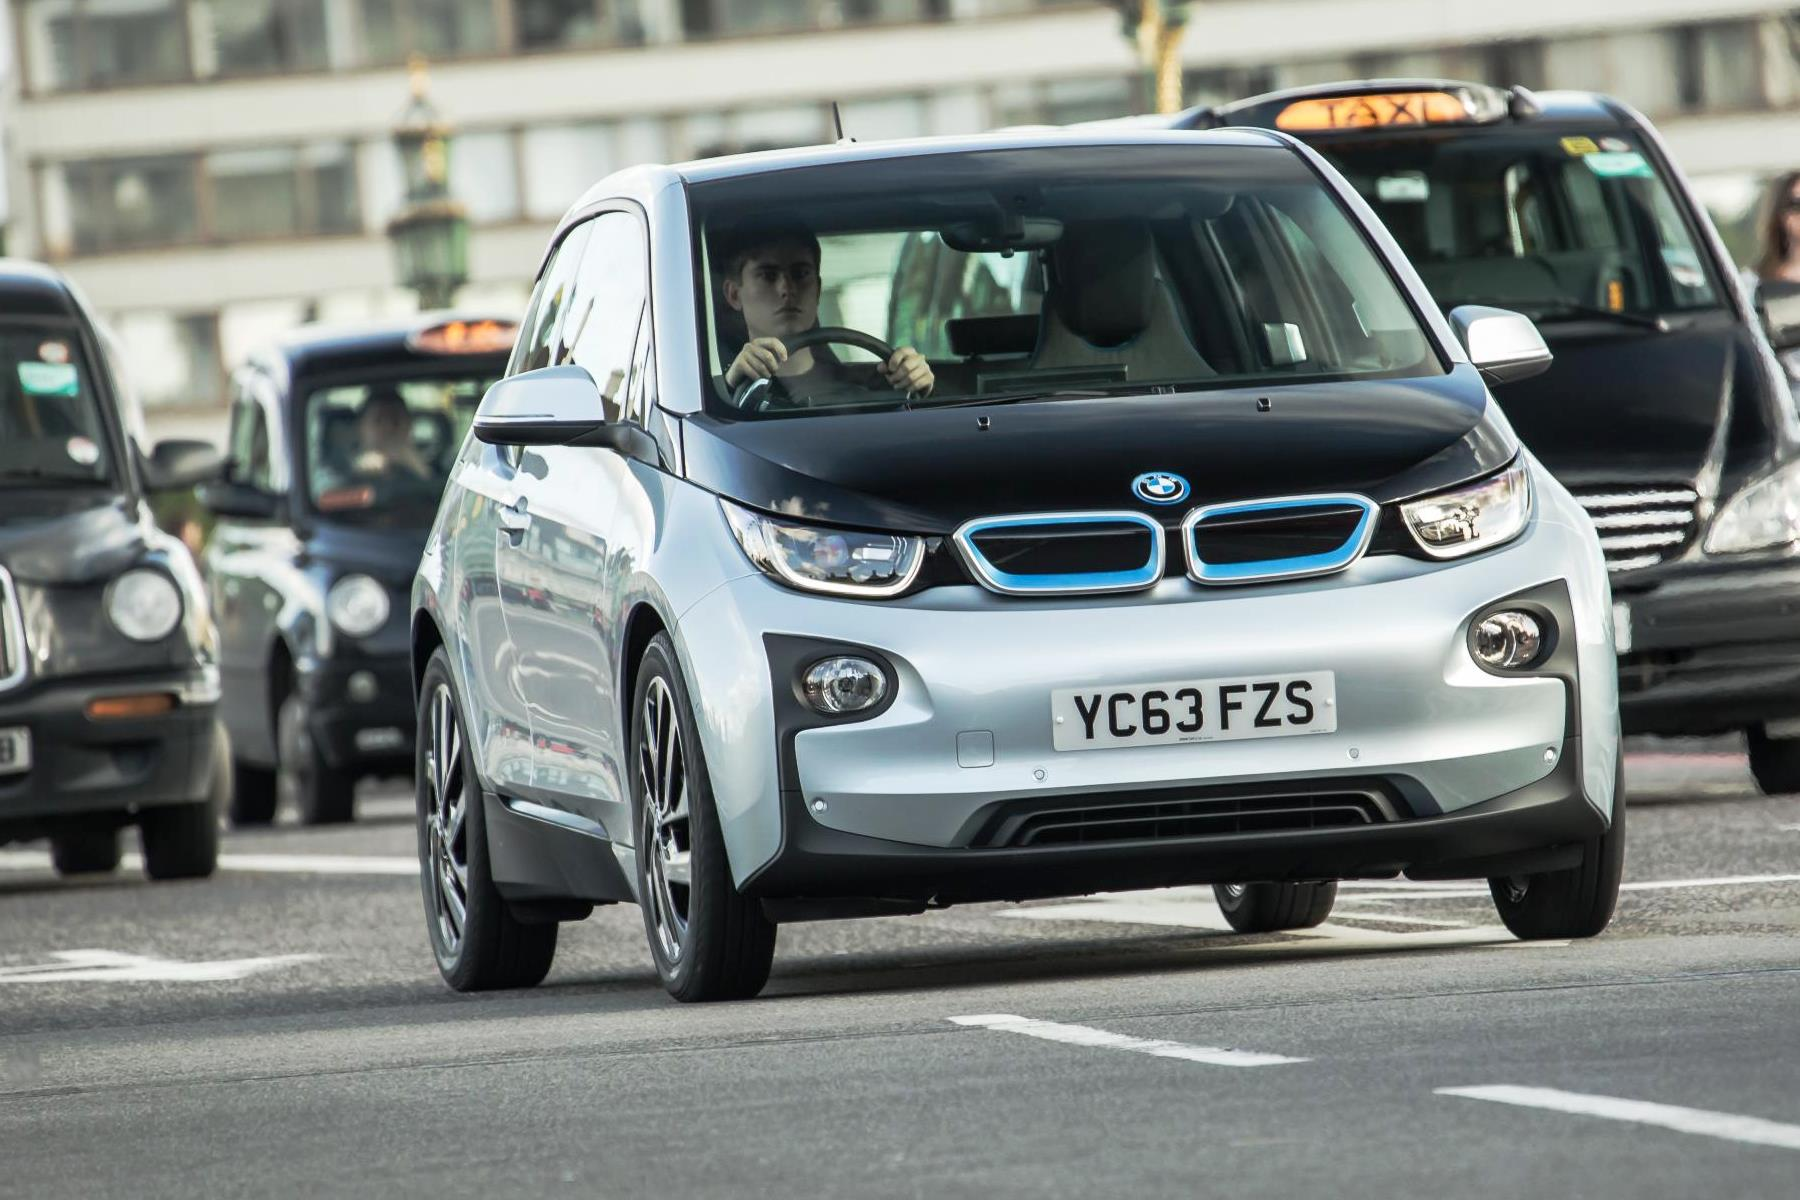 UK Gov't Plans For Electric Cars Will Cost $263 Billion